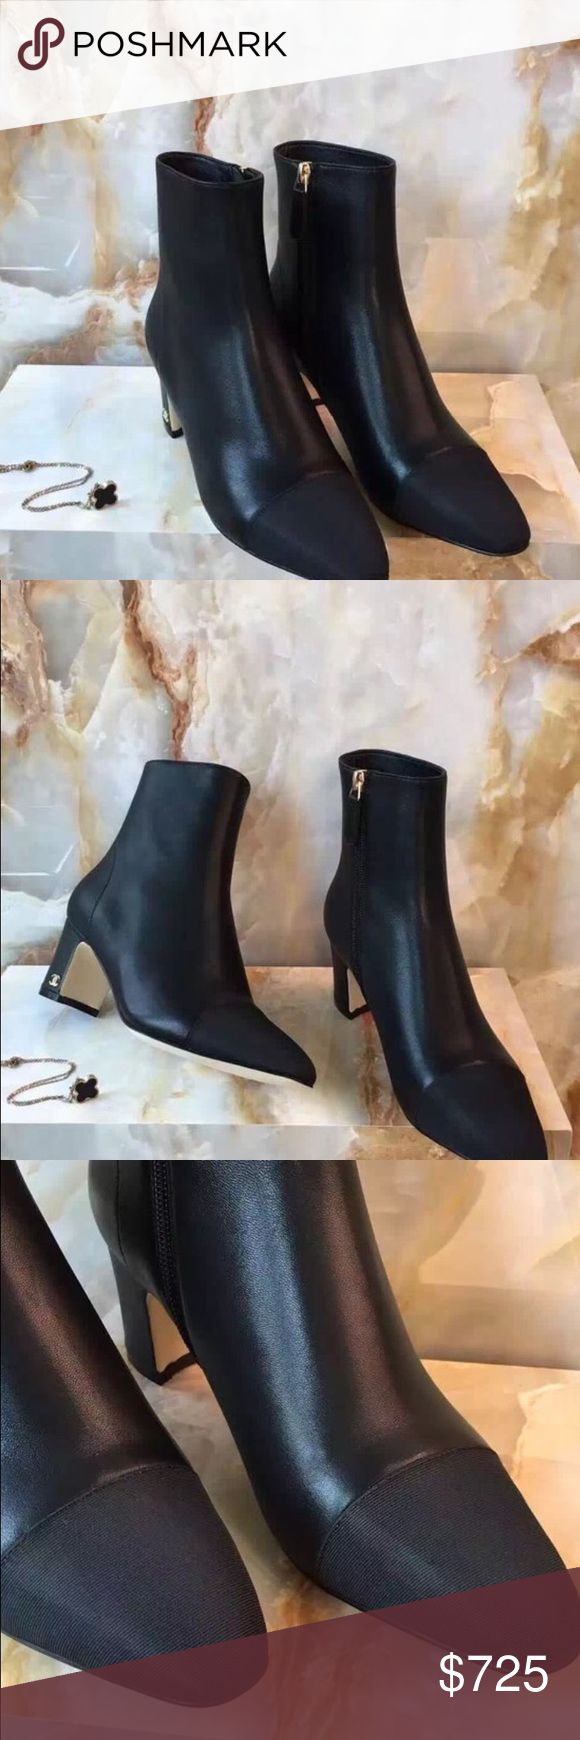 Chanel black booties Chanel black booties boots CHANEL Shoes Ankle Boots & Booties